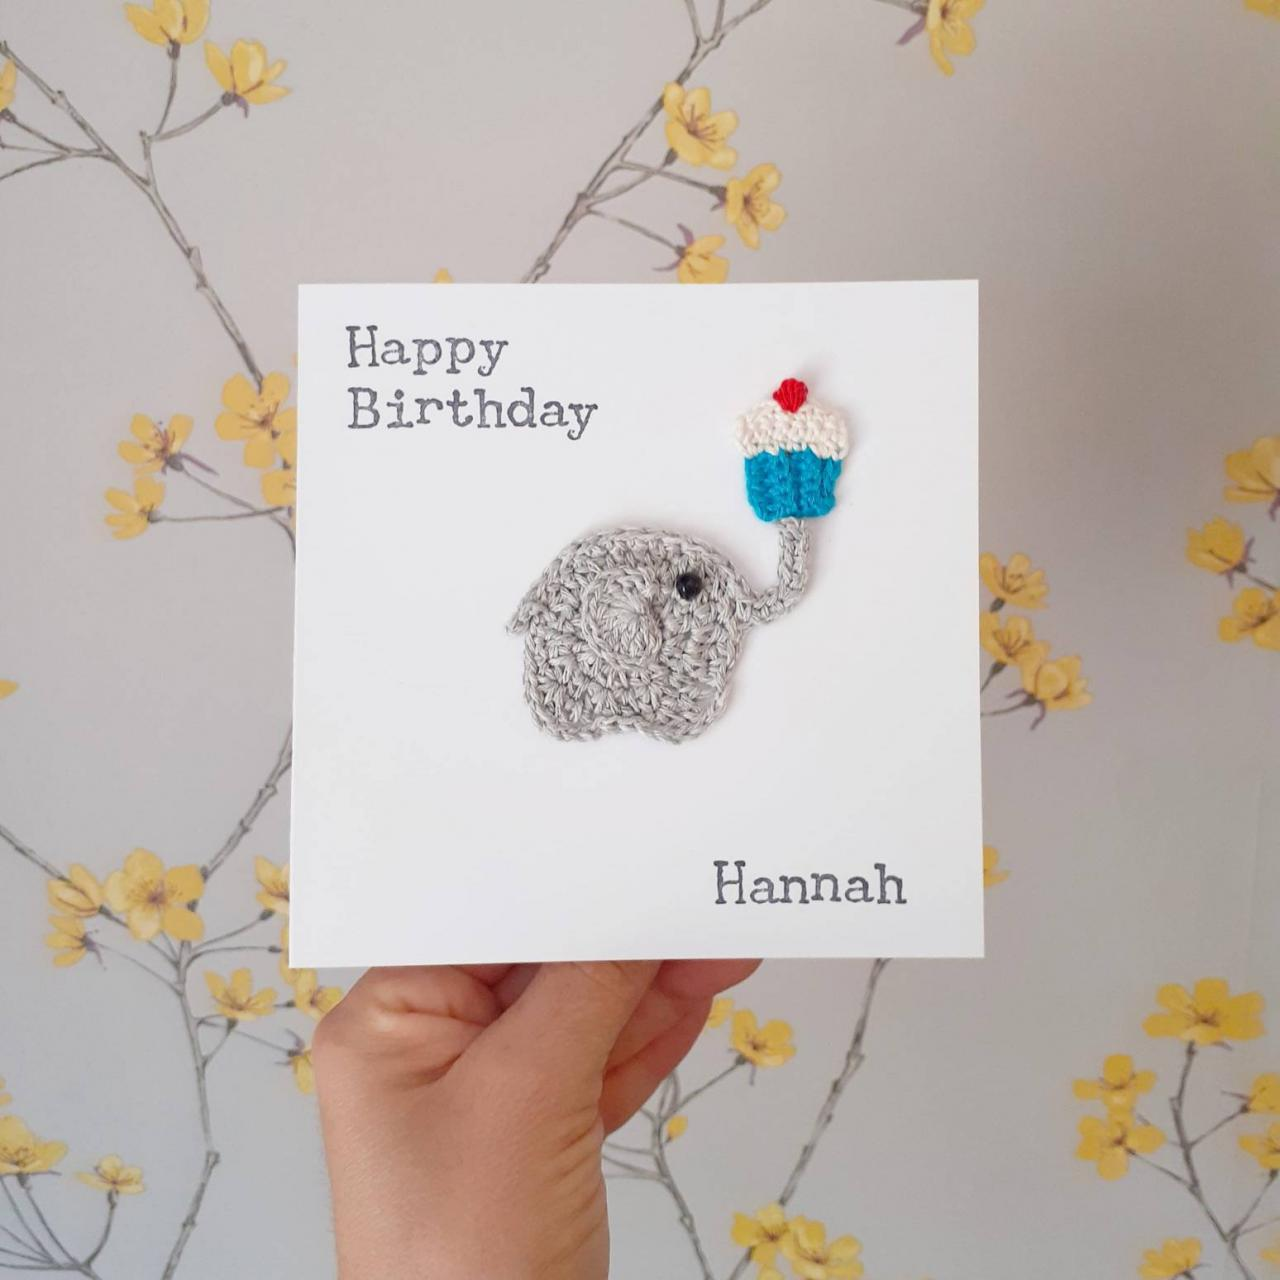 Handmade Crochet Greeting Card, Crochet Elephant Birthday Card, Personalised Elephant Card, Elephant Cupcake Card, Cute Card, Special Friend Card, Cake Lovers Card